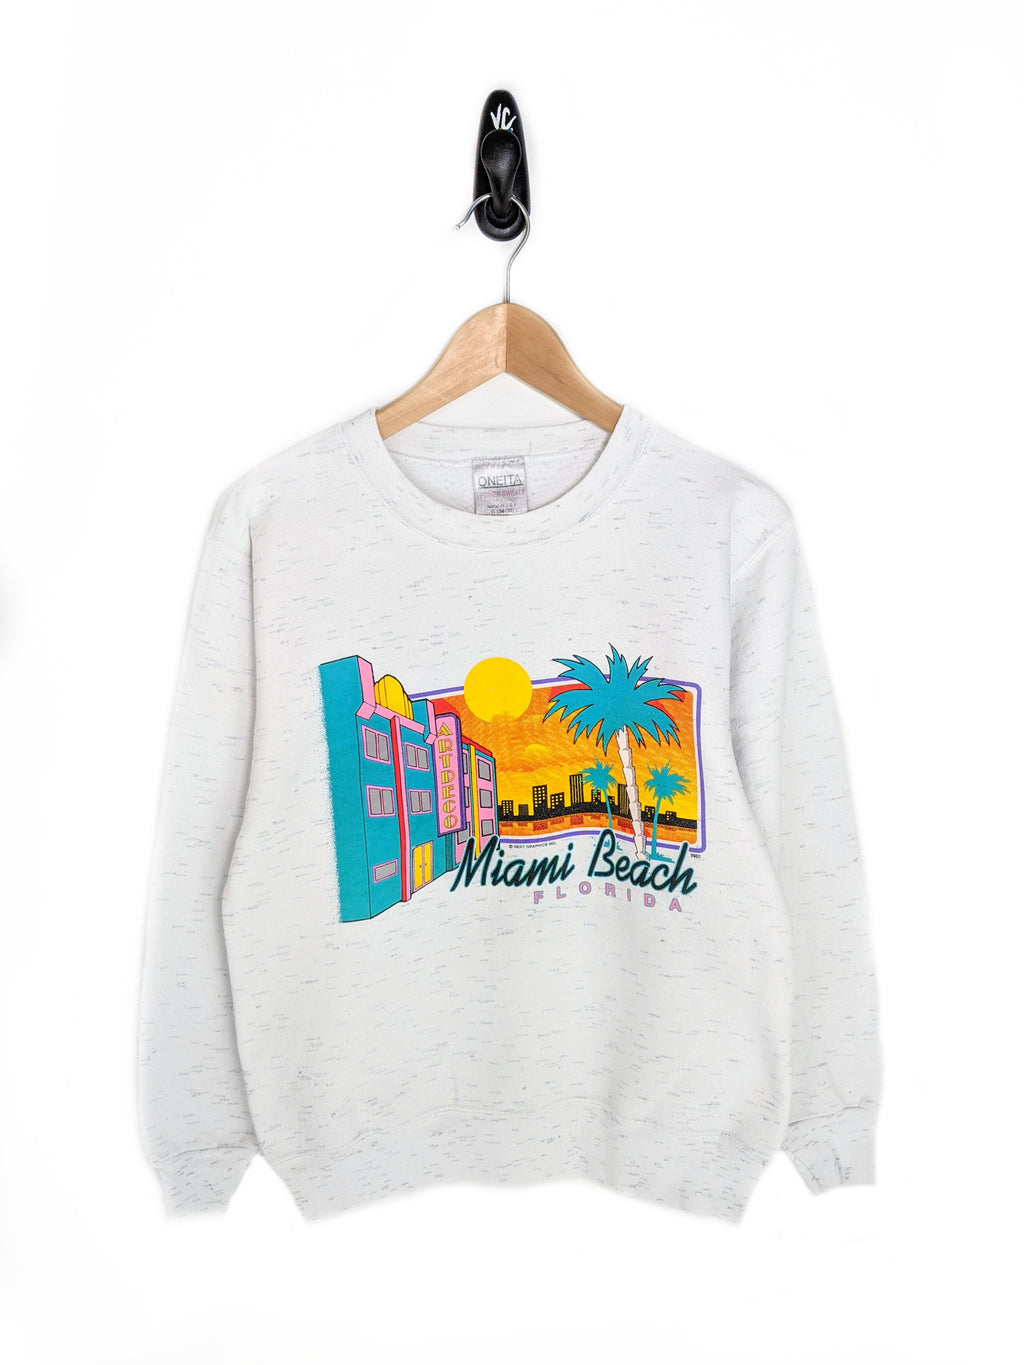 90's Miami Beach Sweatshirt (S)